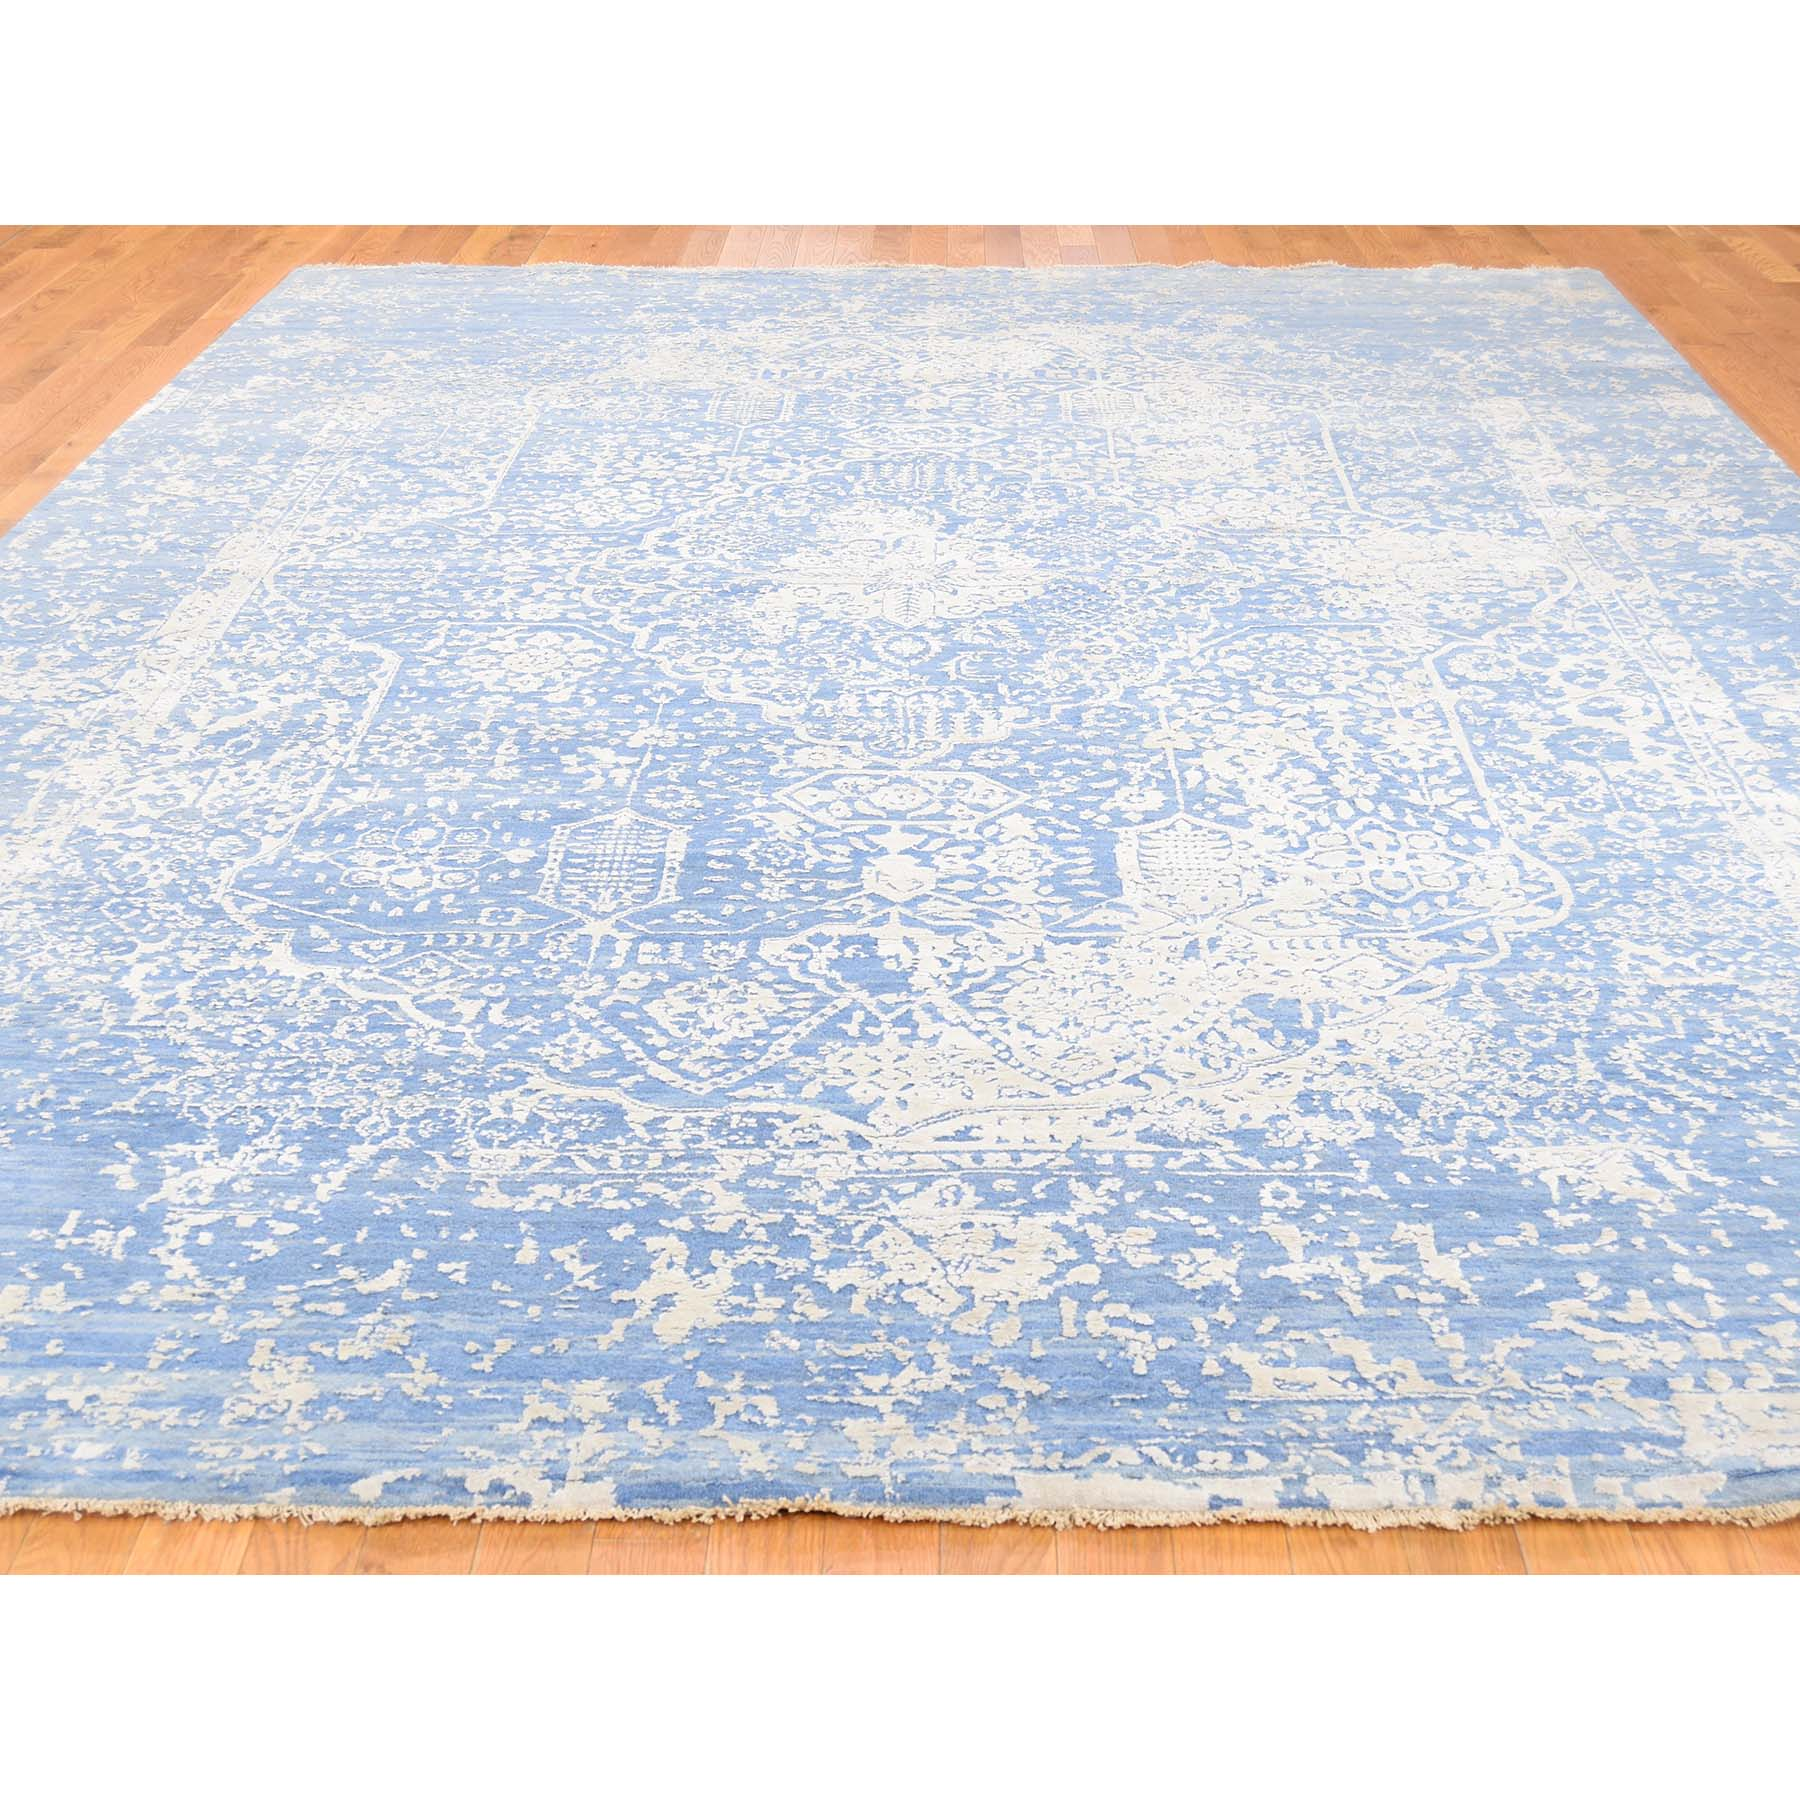 "Handmade Transitional Rectangle Rug > Design# SH39562 > Size: 9'-2"" x 12'-1"" [ONLINE ONLY]"